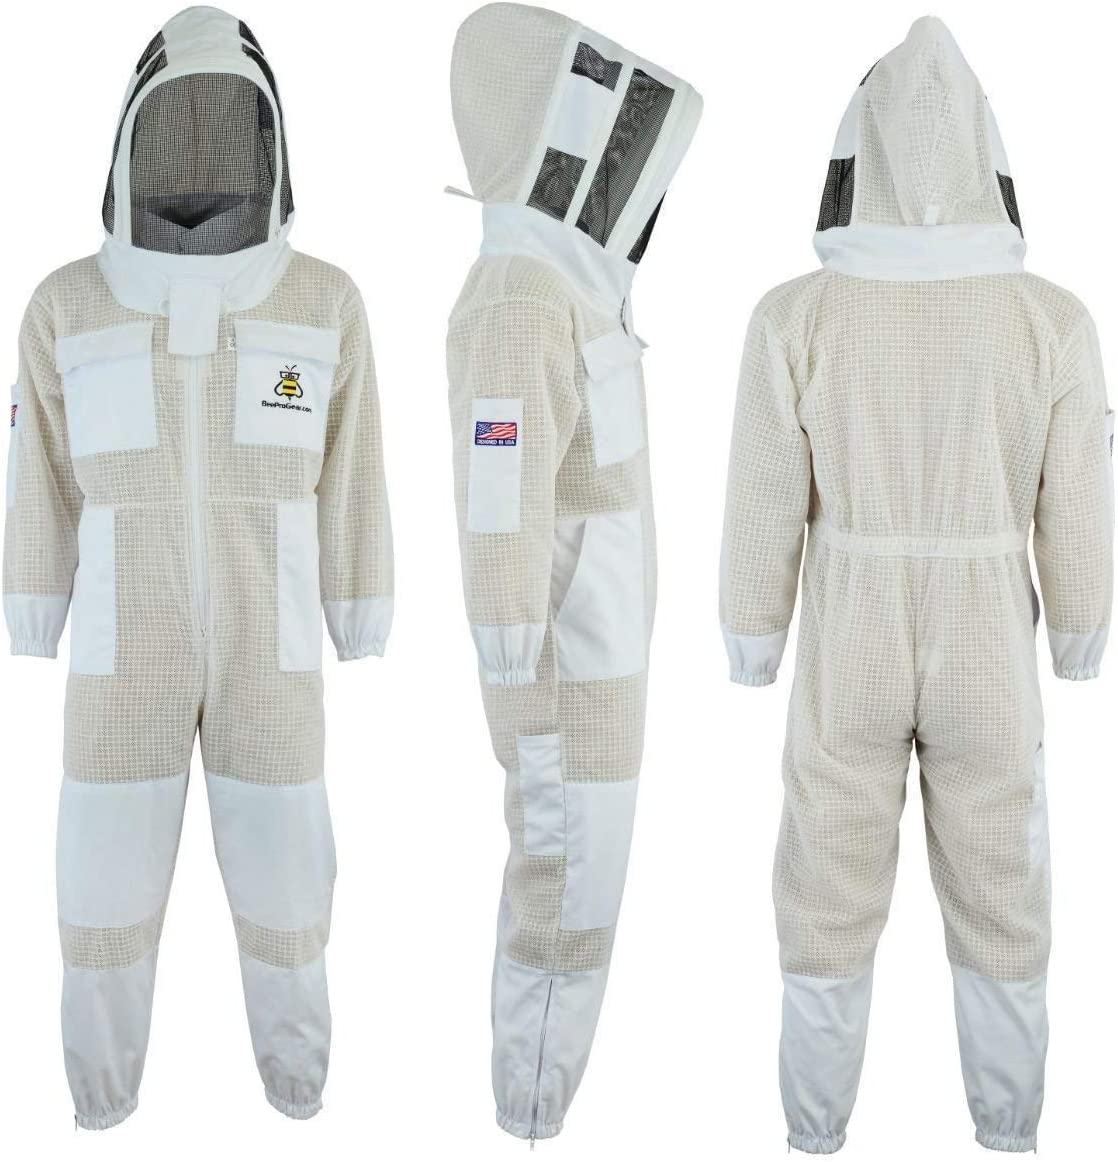 Beekeepers outfit fency Veil Bee Suit 3 Layers ultra ventilated safety protective unisex white fabric mesh beekeeping suit